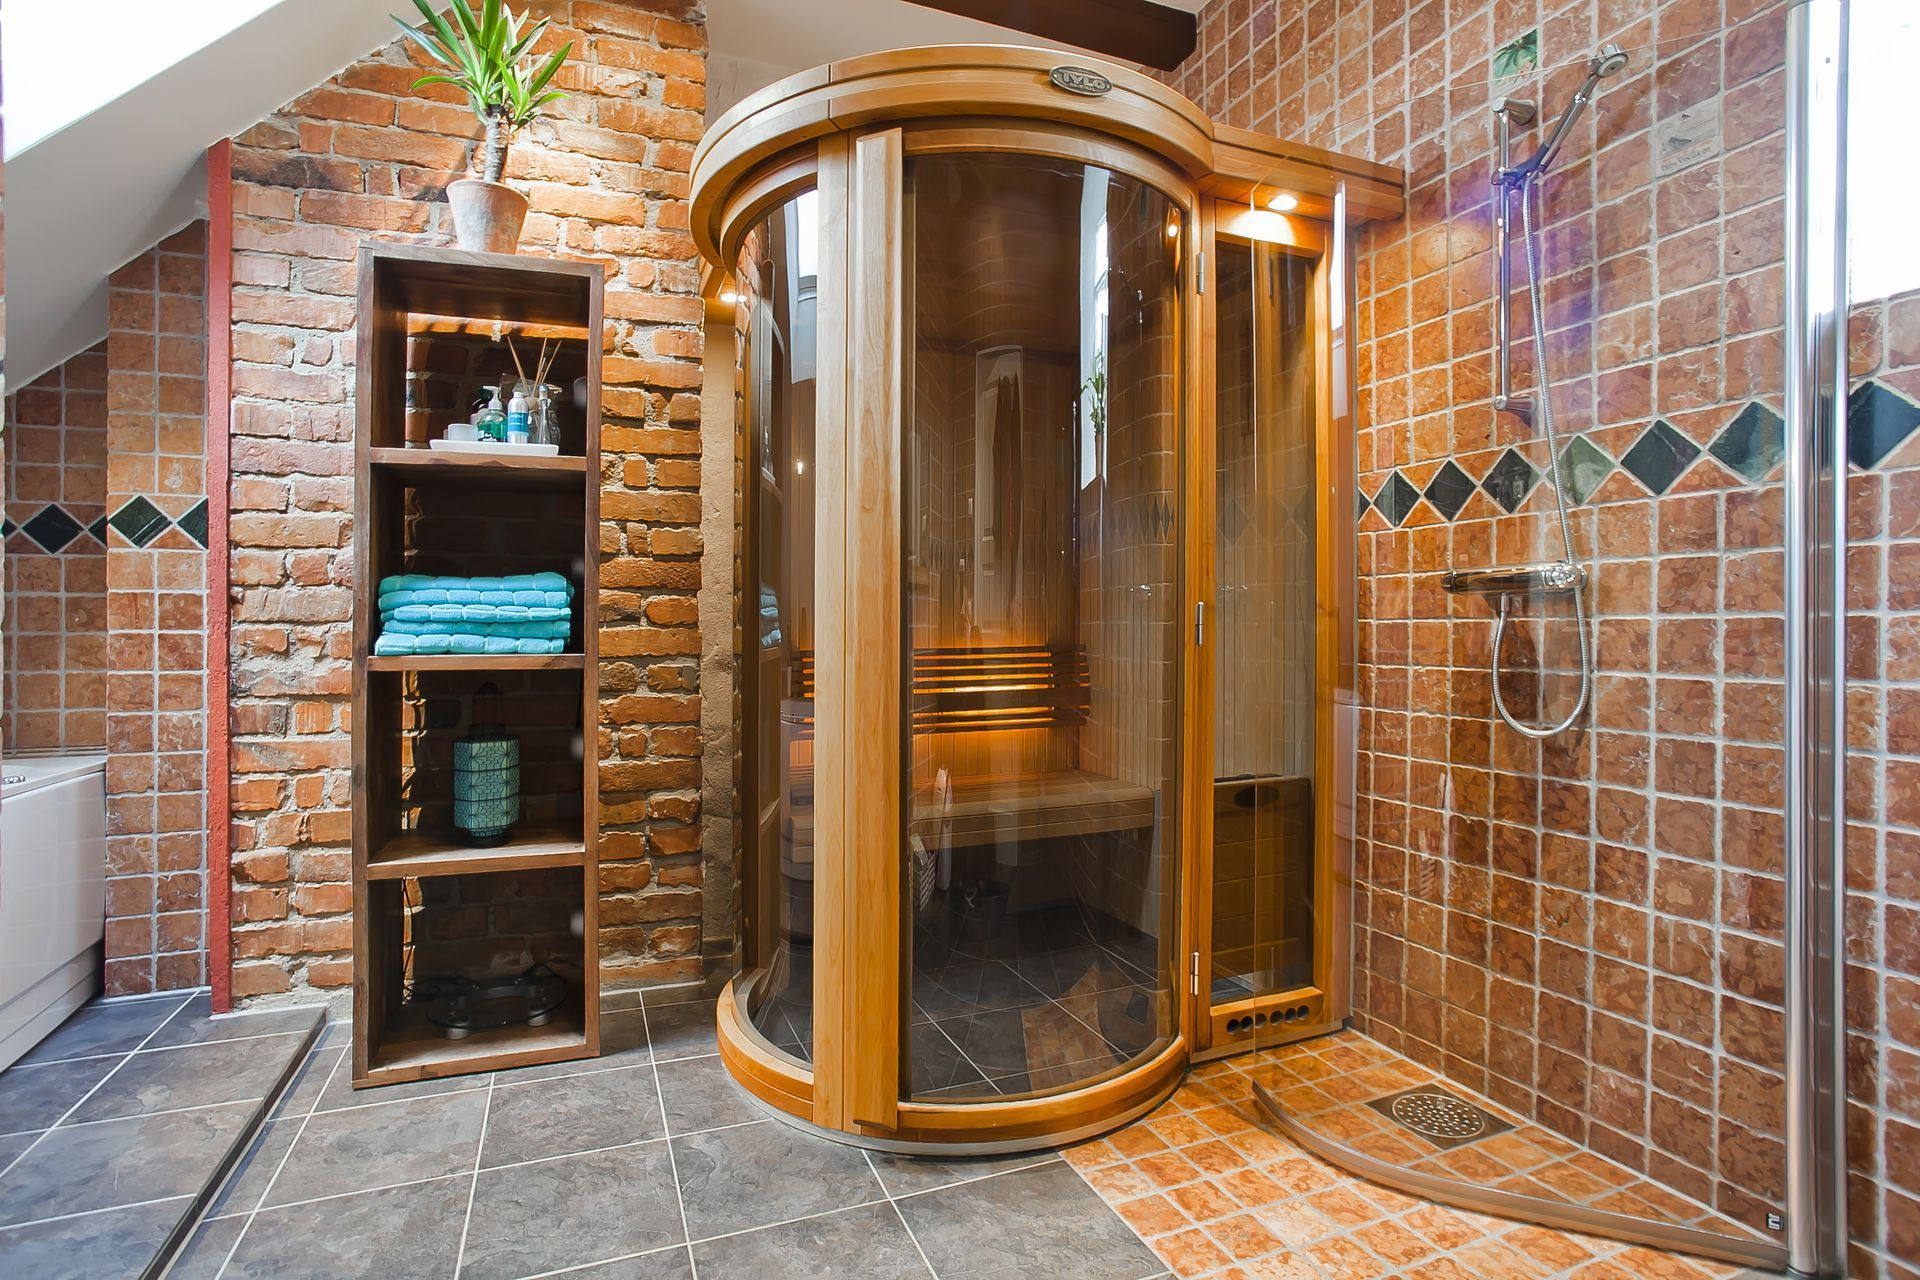 Bathroom Sauna, Jacuzzi And Shower Brick Walls